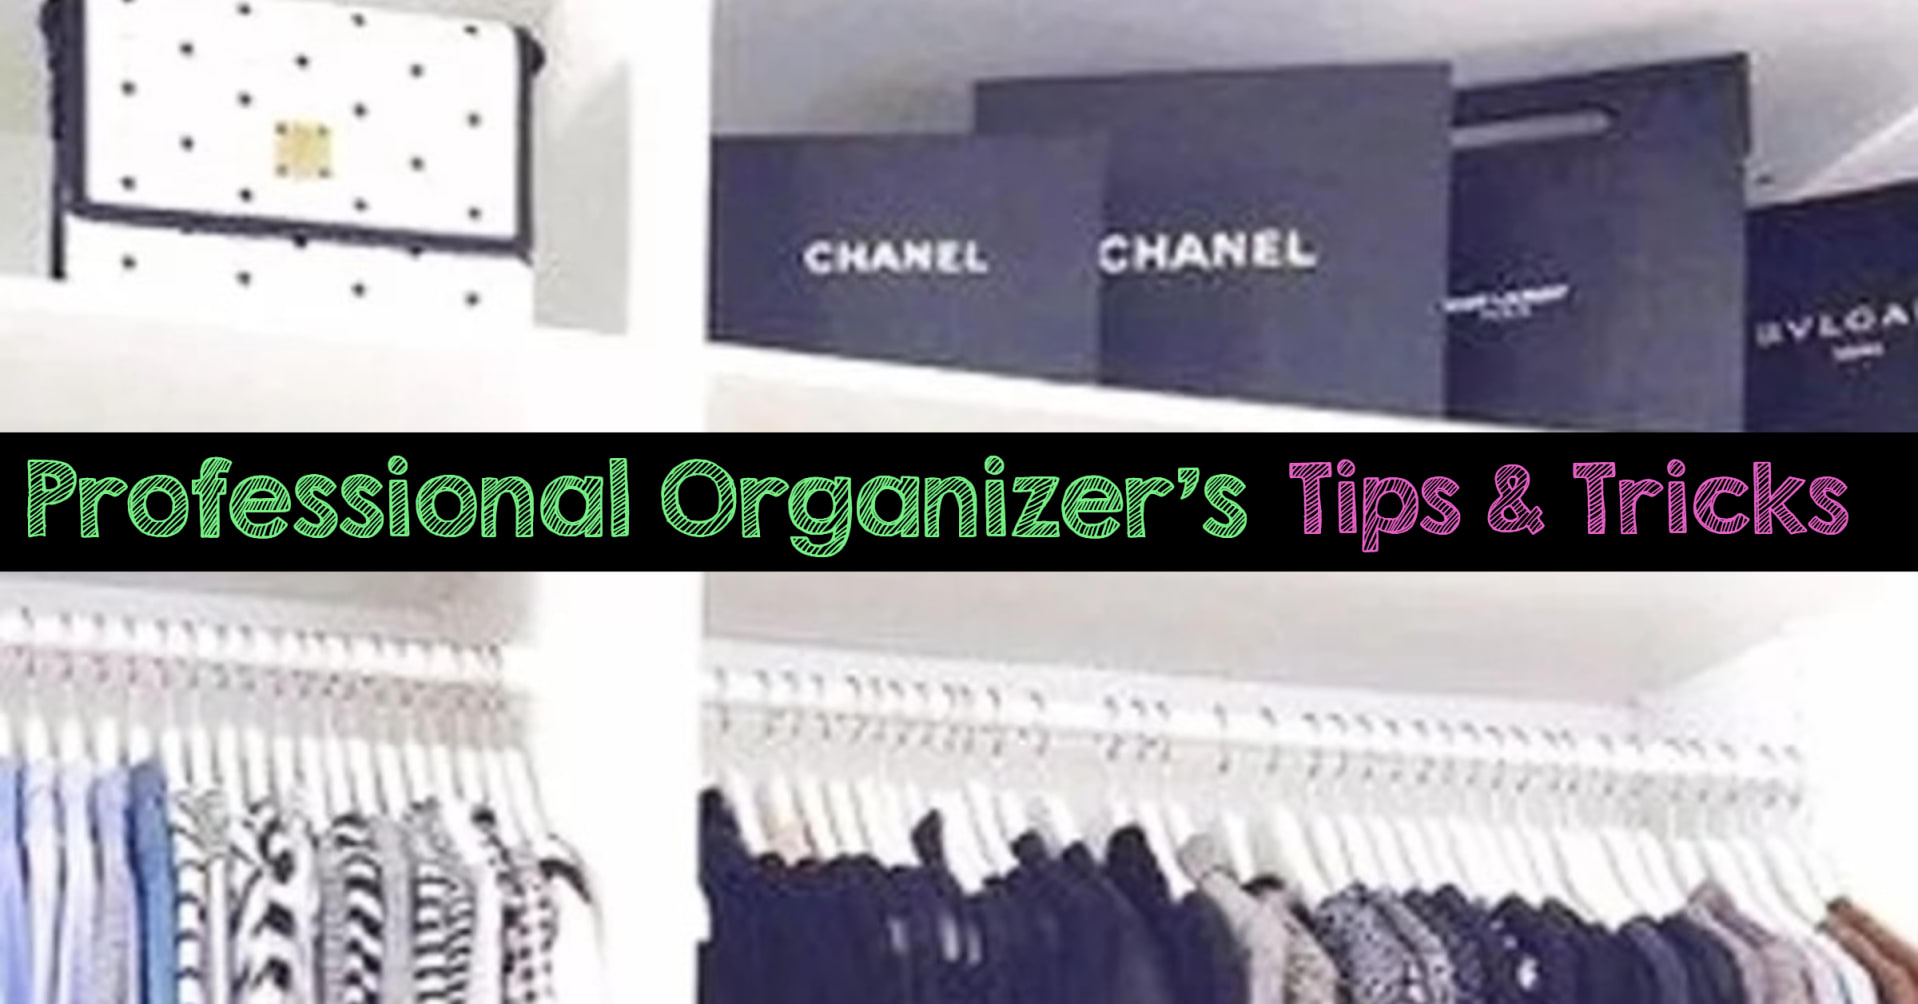 Want to use a professional organizer cleaning and organizing services near you?  These professional organizer tips from professional organizer's websites are the secrets to home organizers - you COULD find a professional organizer (be sure you look up professional organizer job description to be SURE that's what you need) - OR you could organize and declutter your home yourself with these tips and tricks from local professional home organizers.